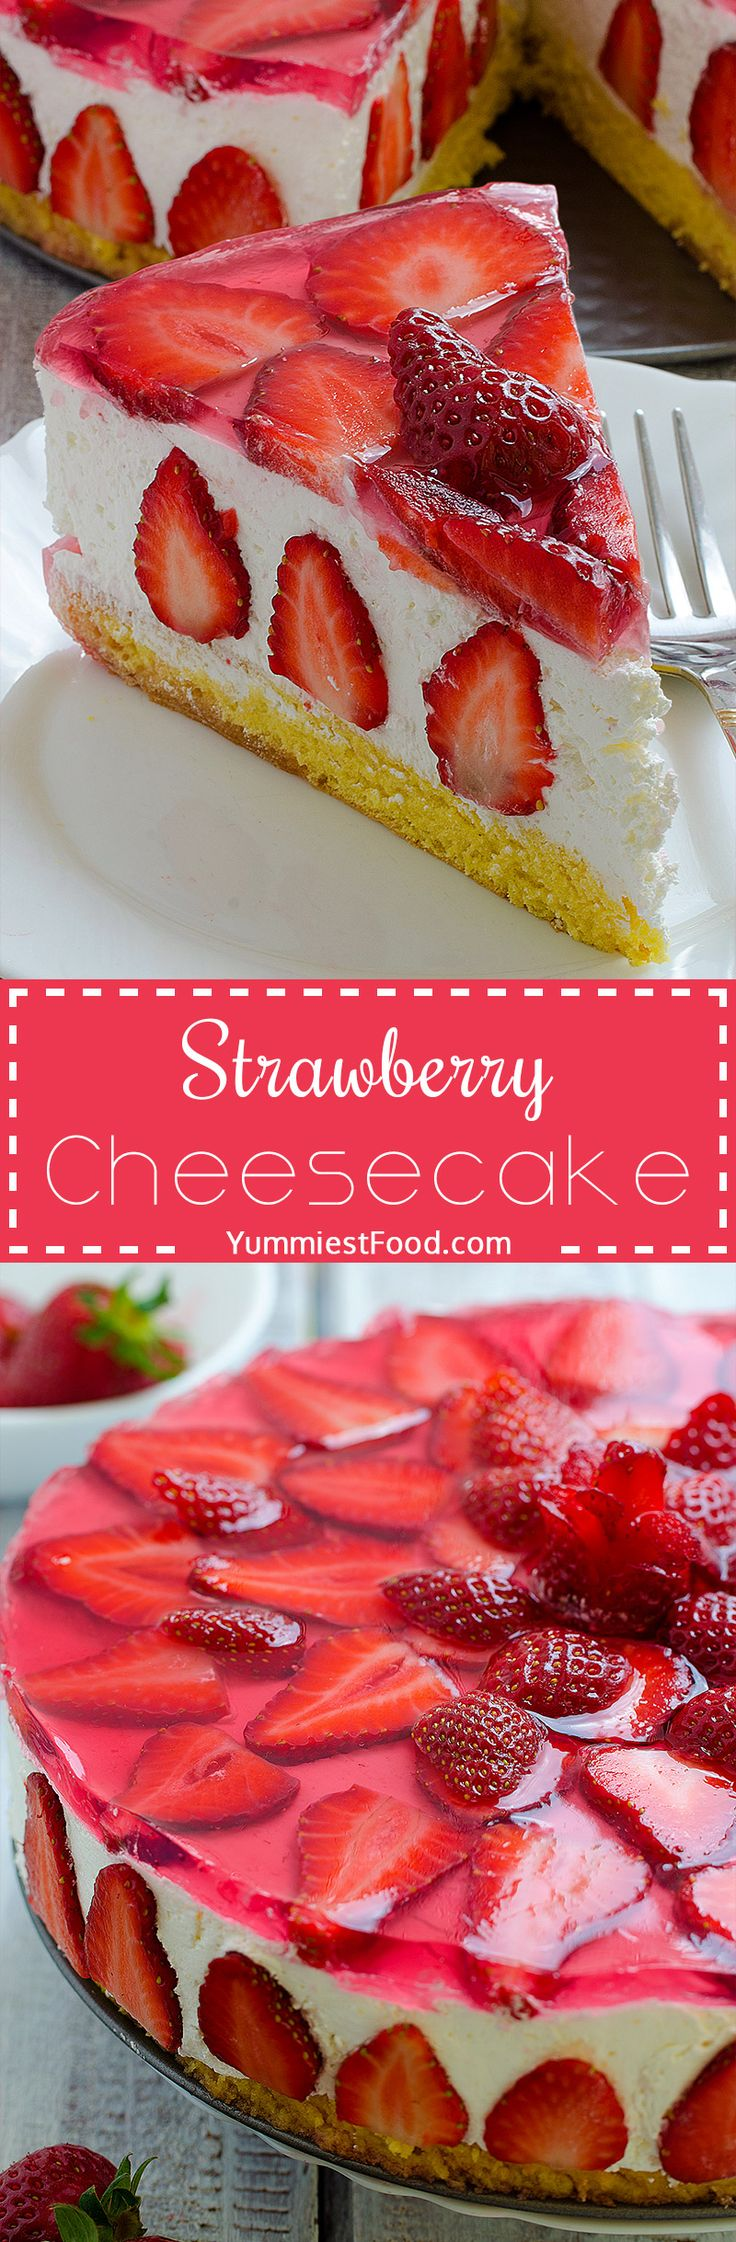 Strawberry Cheesecake - love at first bite! This cake with cheese and strawberry combination is very tasty, delicious, quick and very refreshing!